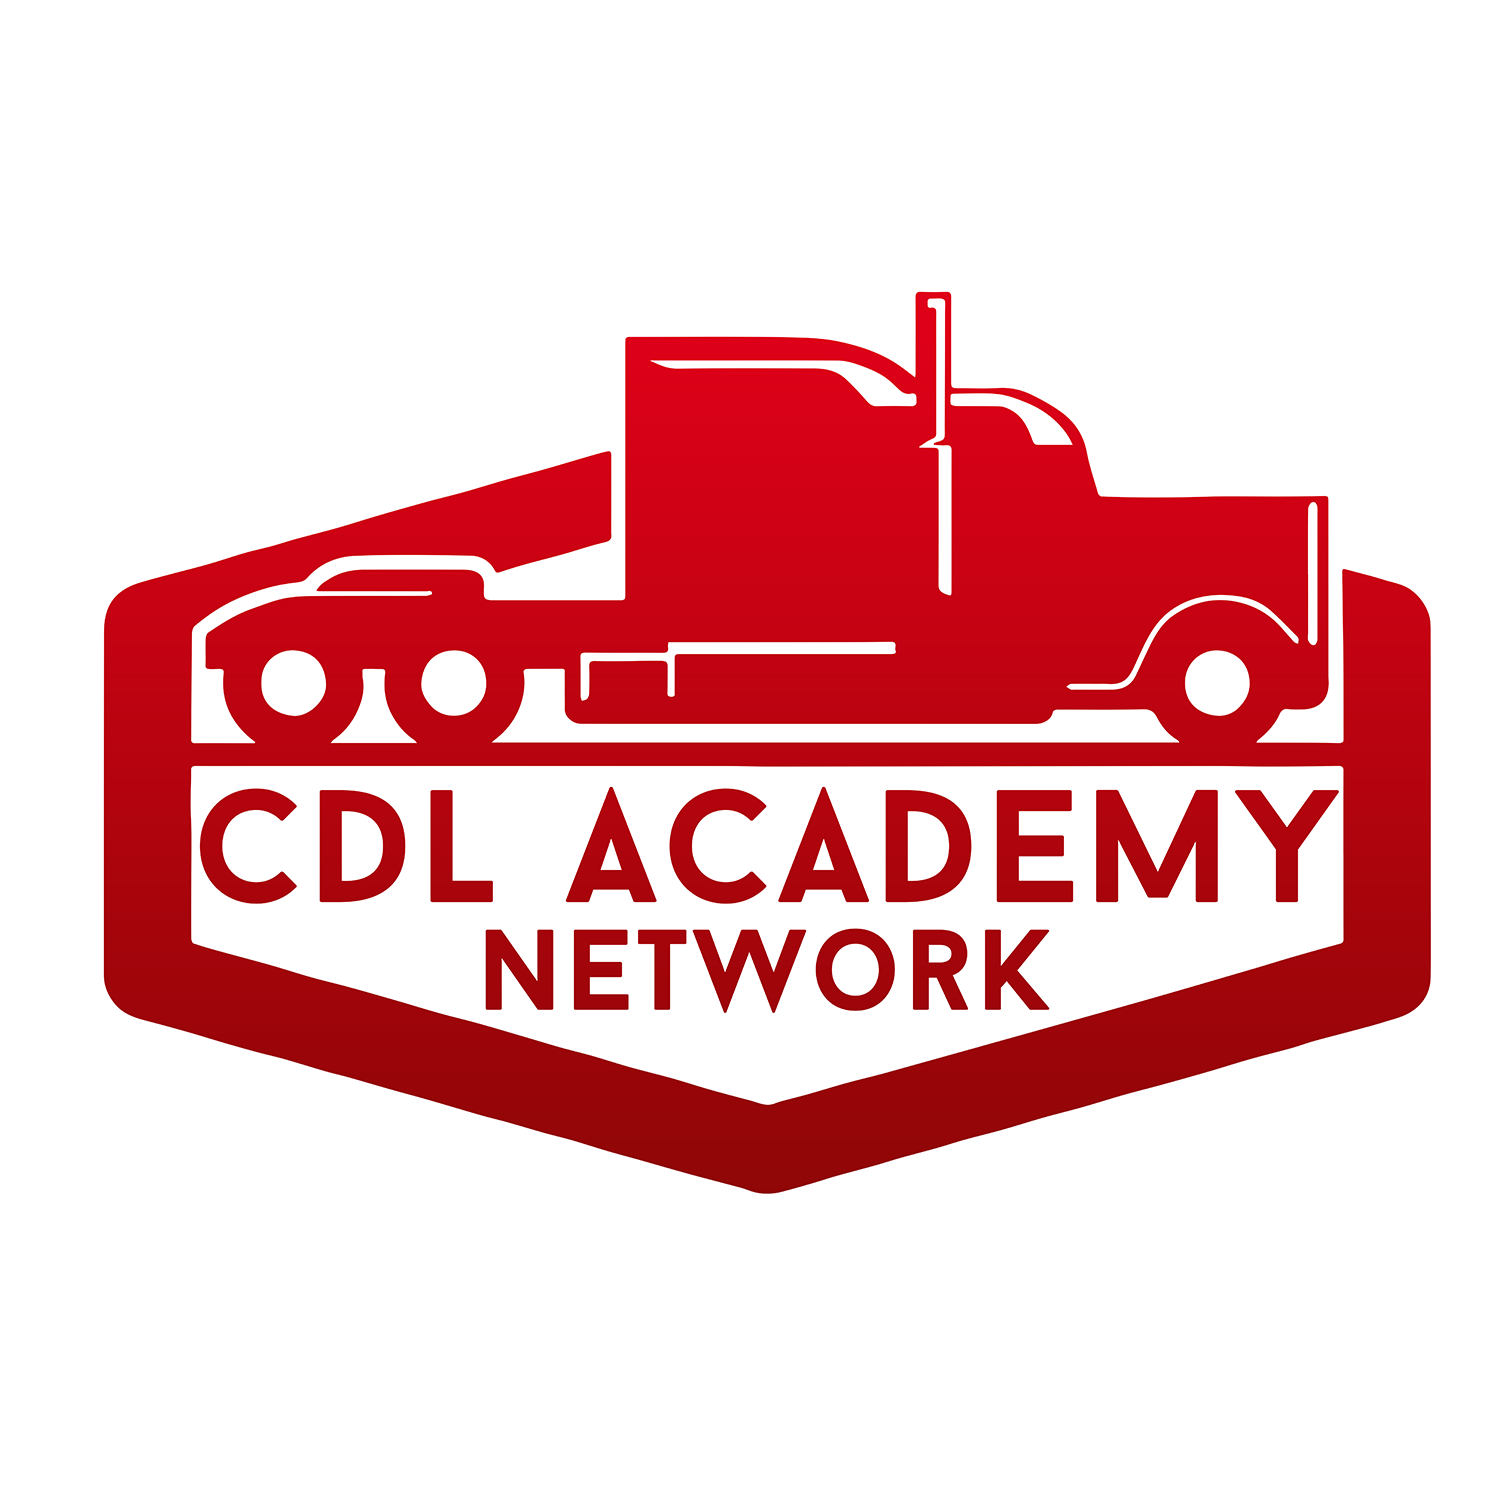 CDL Academy Network